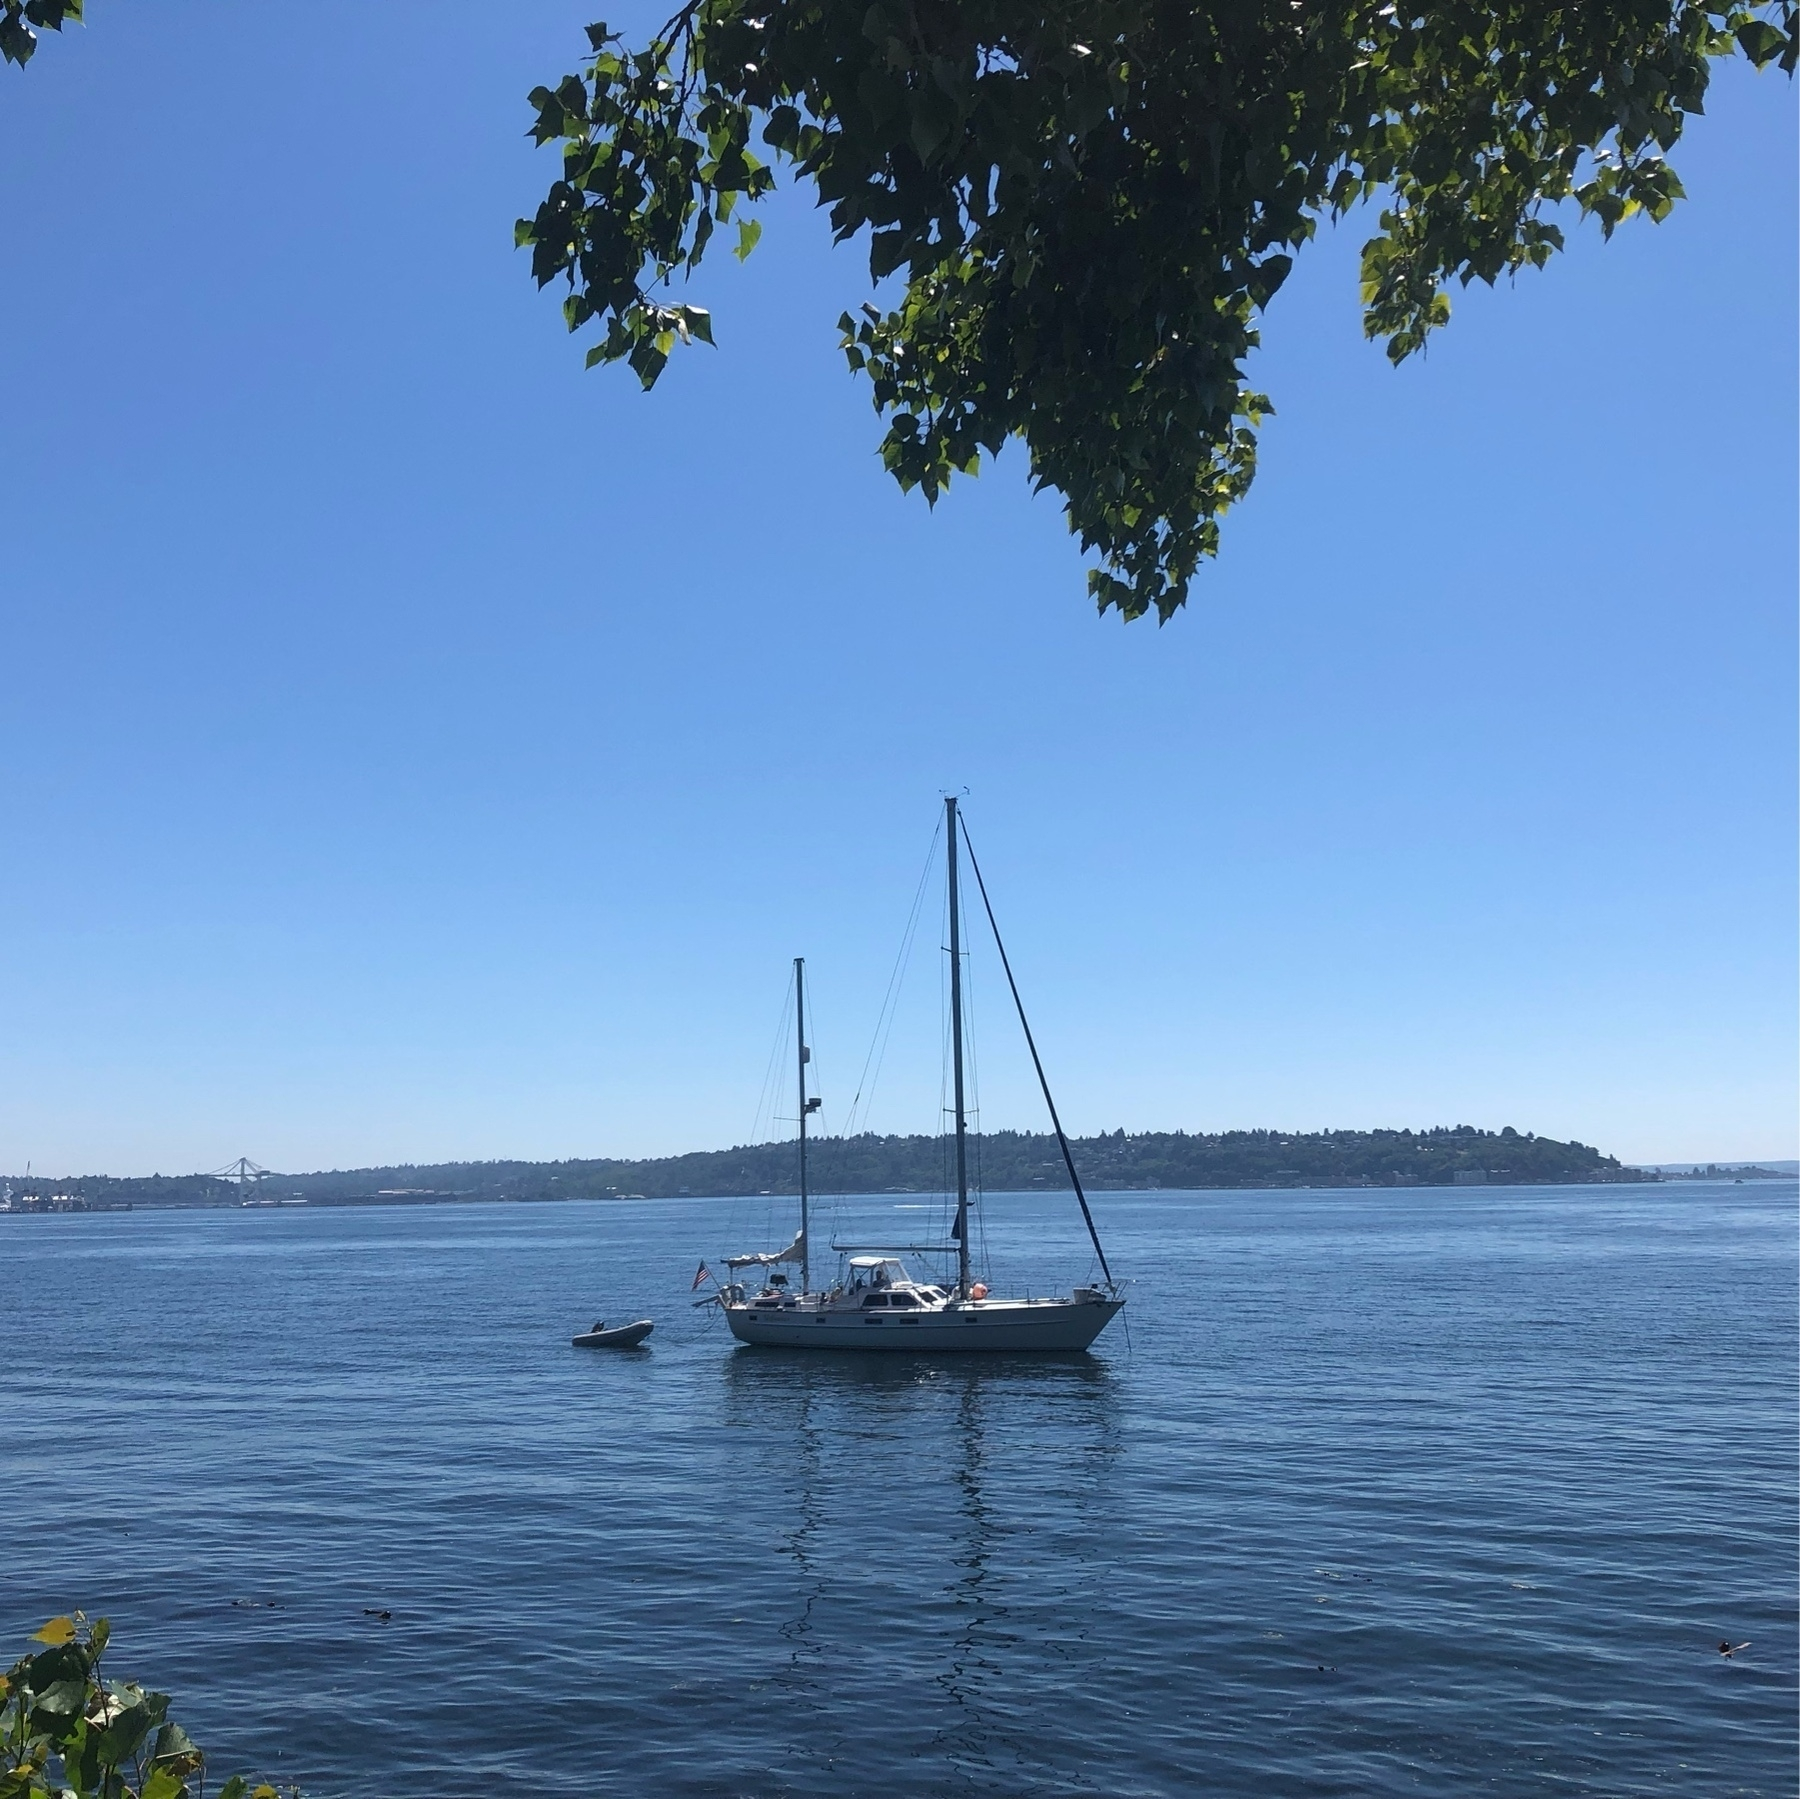 A sailboat rests just offshore with it's sail down.